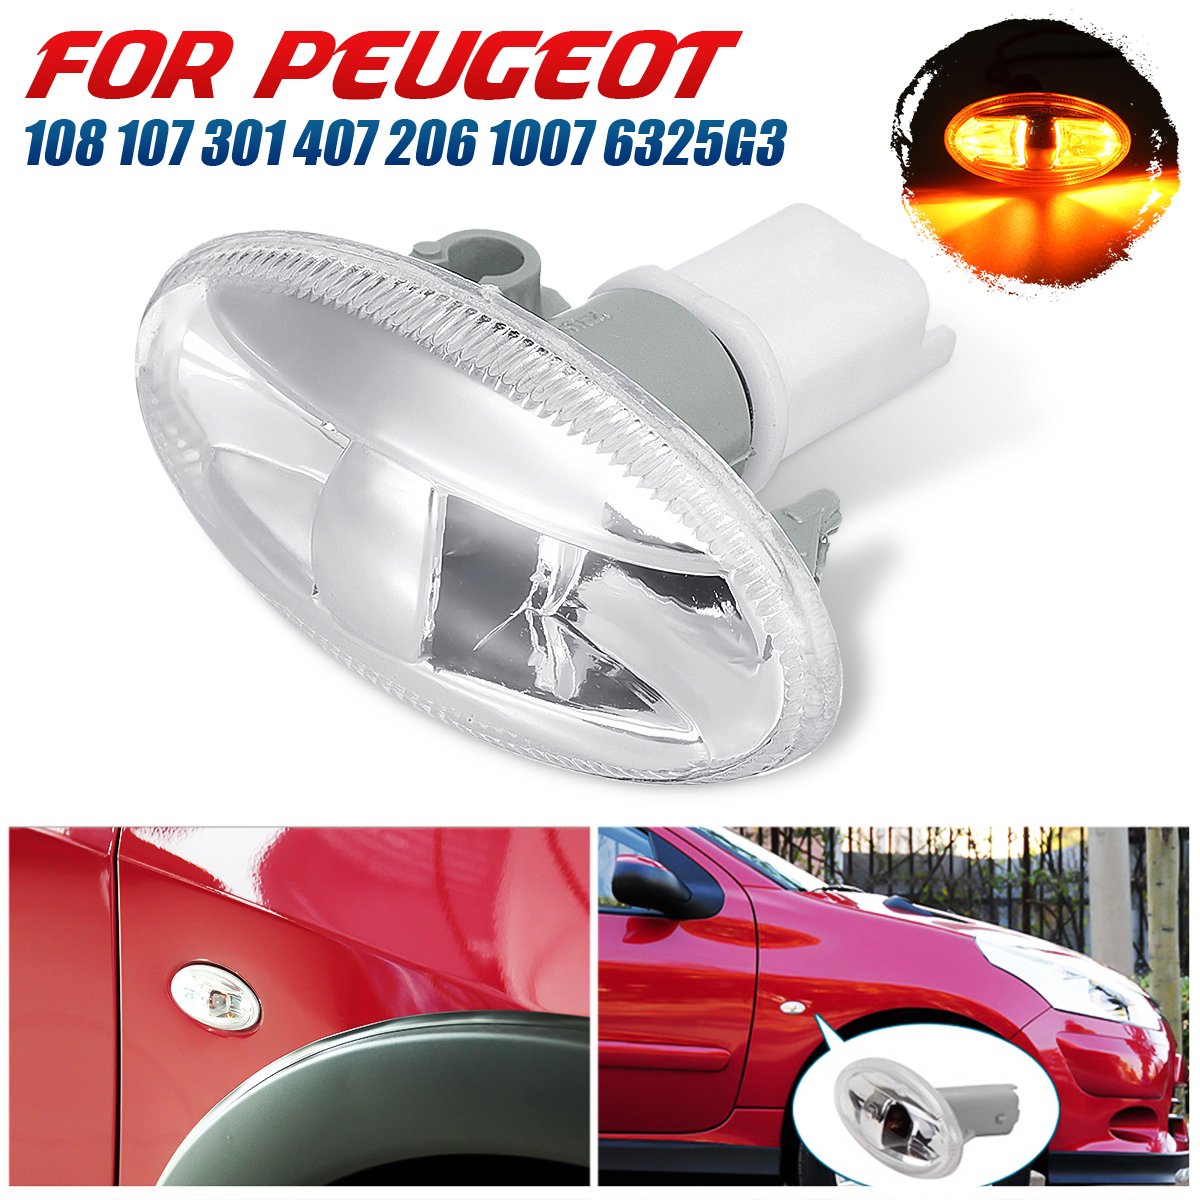 New Car Partner Side Indicator Repeater Light <font><b>Lamp</b></font> For <font><b>Peugeot</b></font> 108 107 407 206 1007 VU <font><b>301</b></font> 108 407 High Quality image